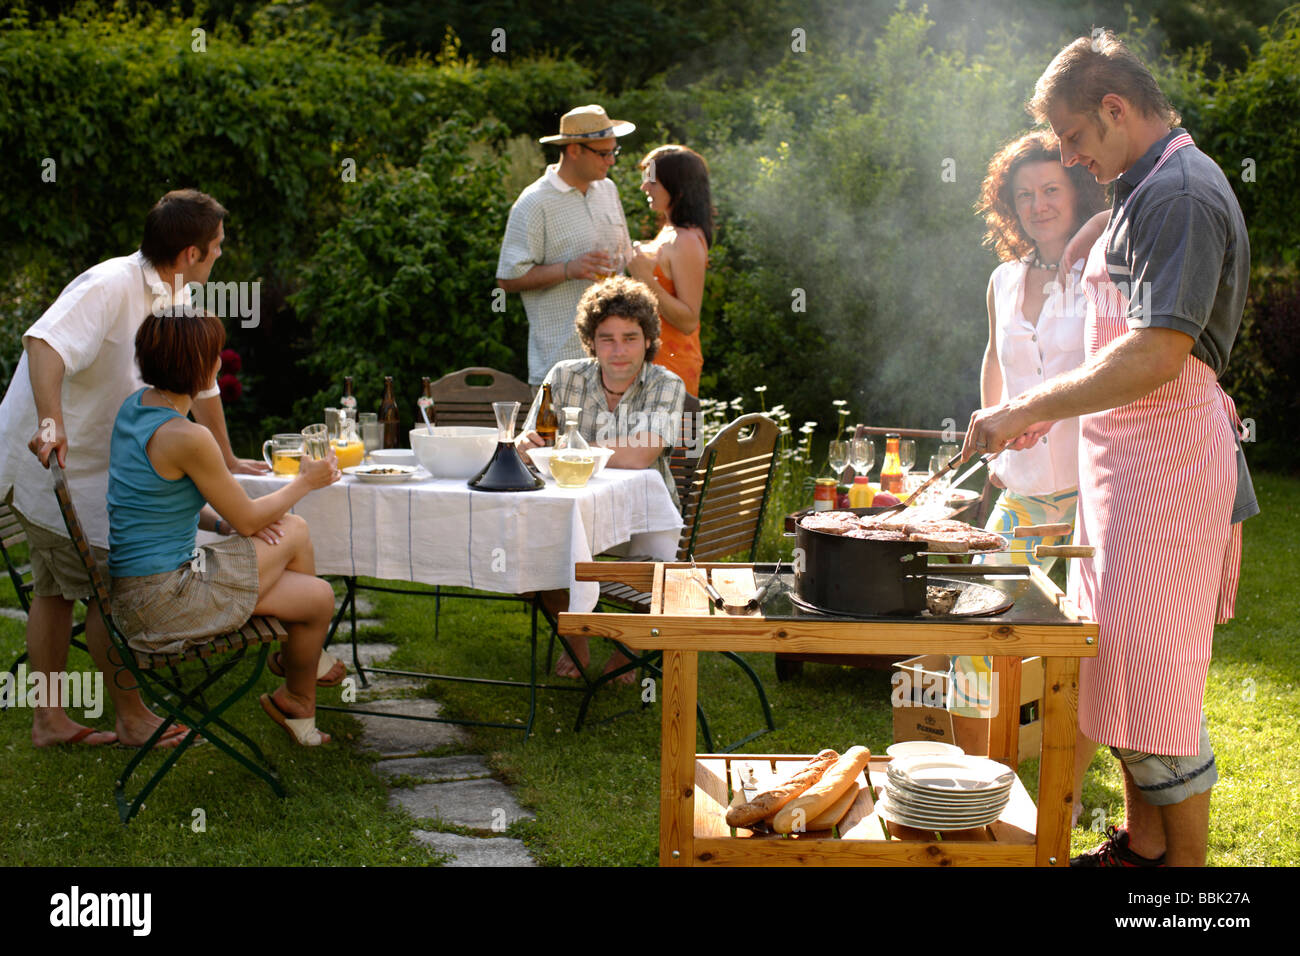 barbecue party garden party grill party stock photo 24390446 alamy. Black Bedroom Furniture Sets. Home Design Ideas